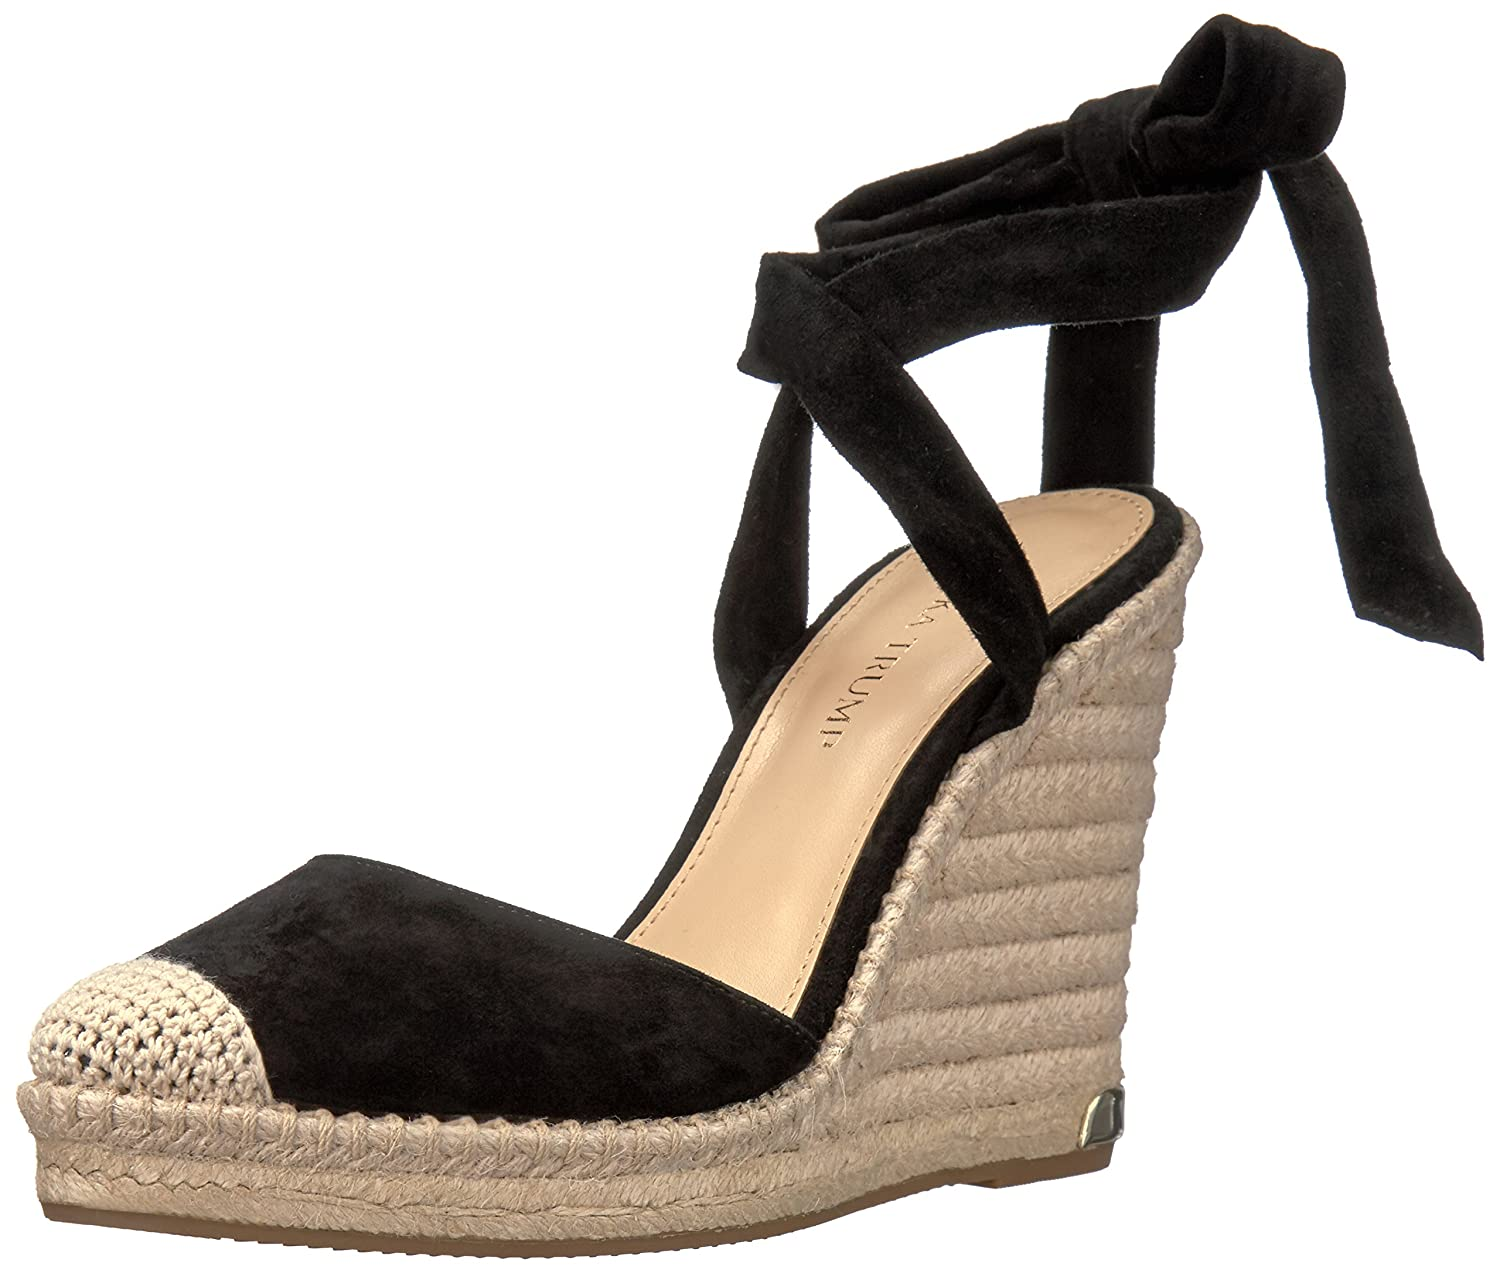 deb5b83e9f3 Amazon.com | Ivanka Trump Women's Wadia3 Espadrille Wedge Sandal ...